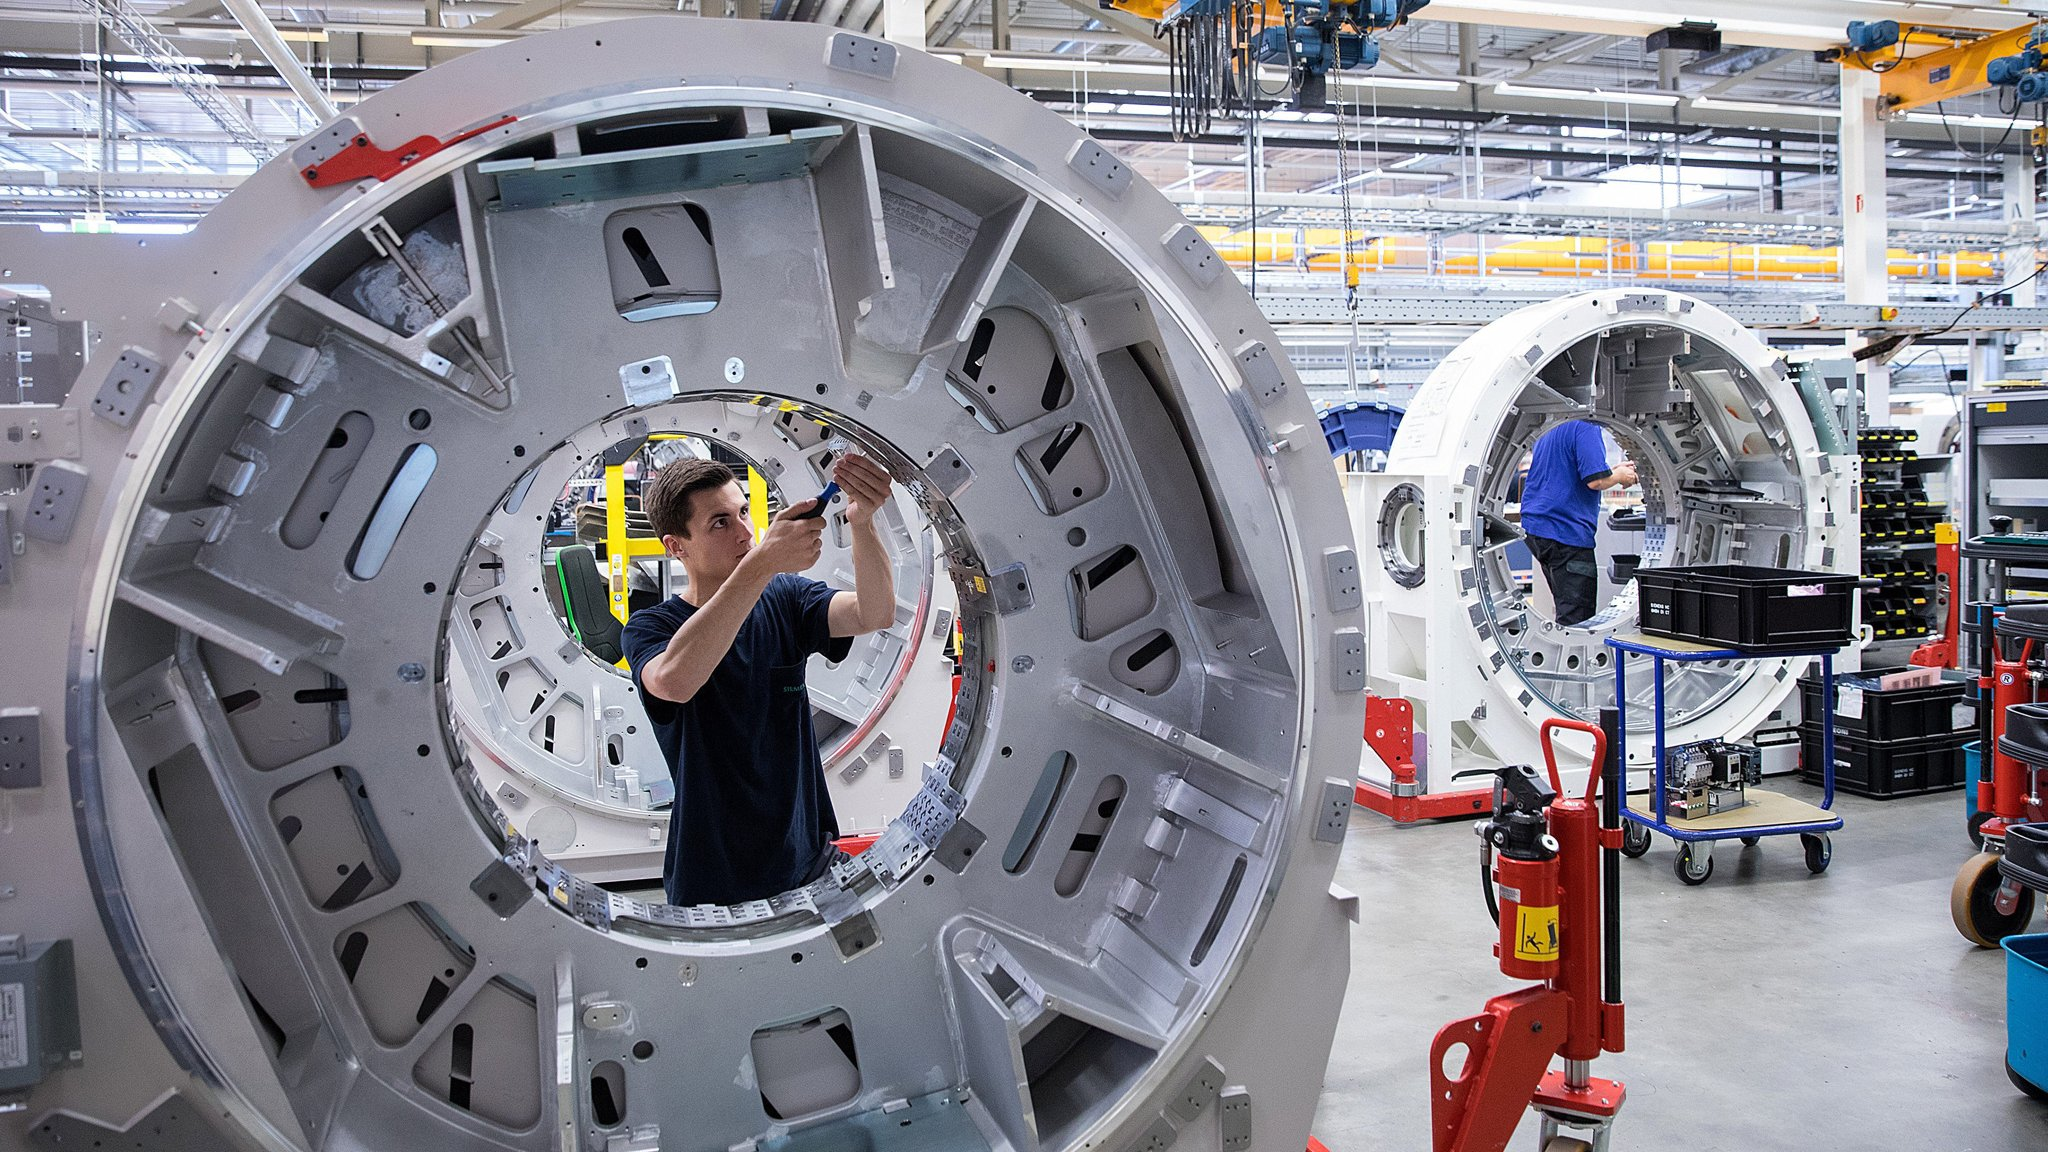 Siemens' unit to be Germany's largest IPO since 1996